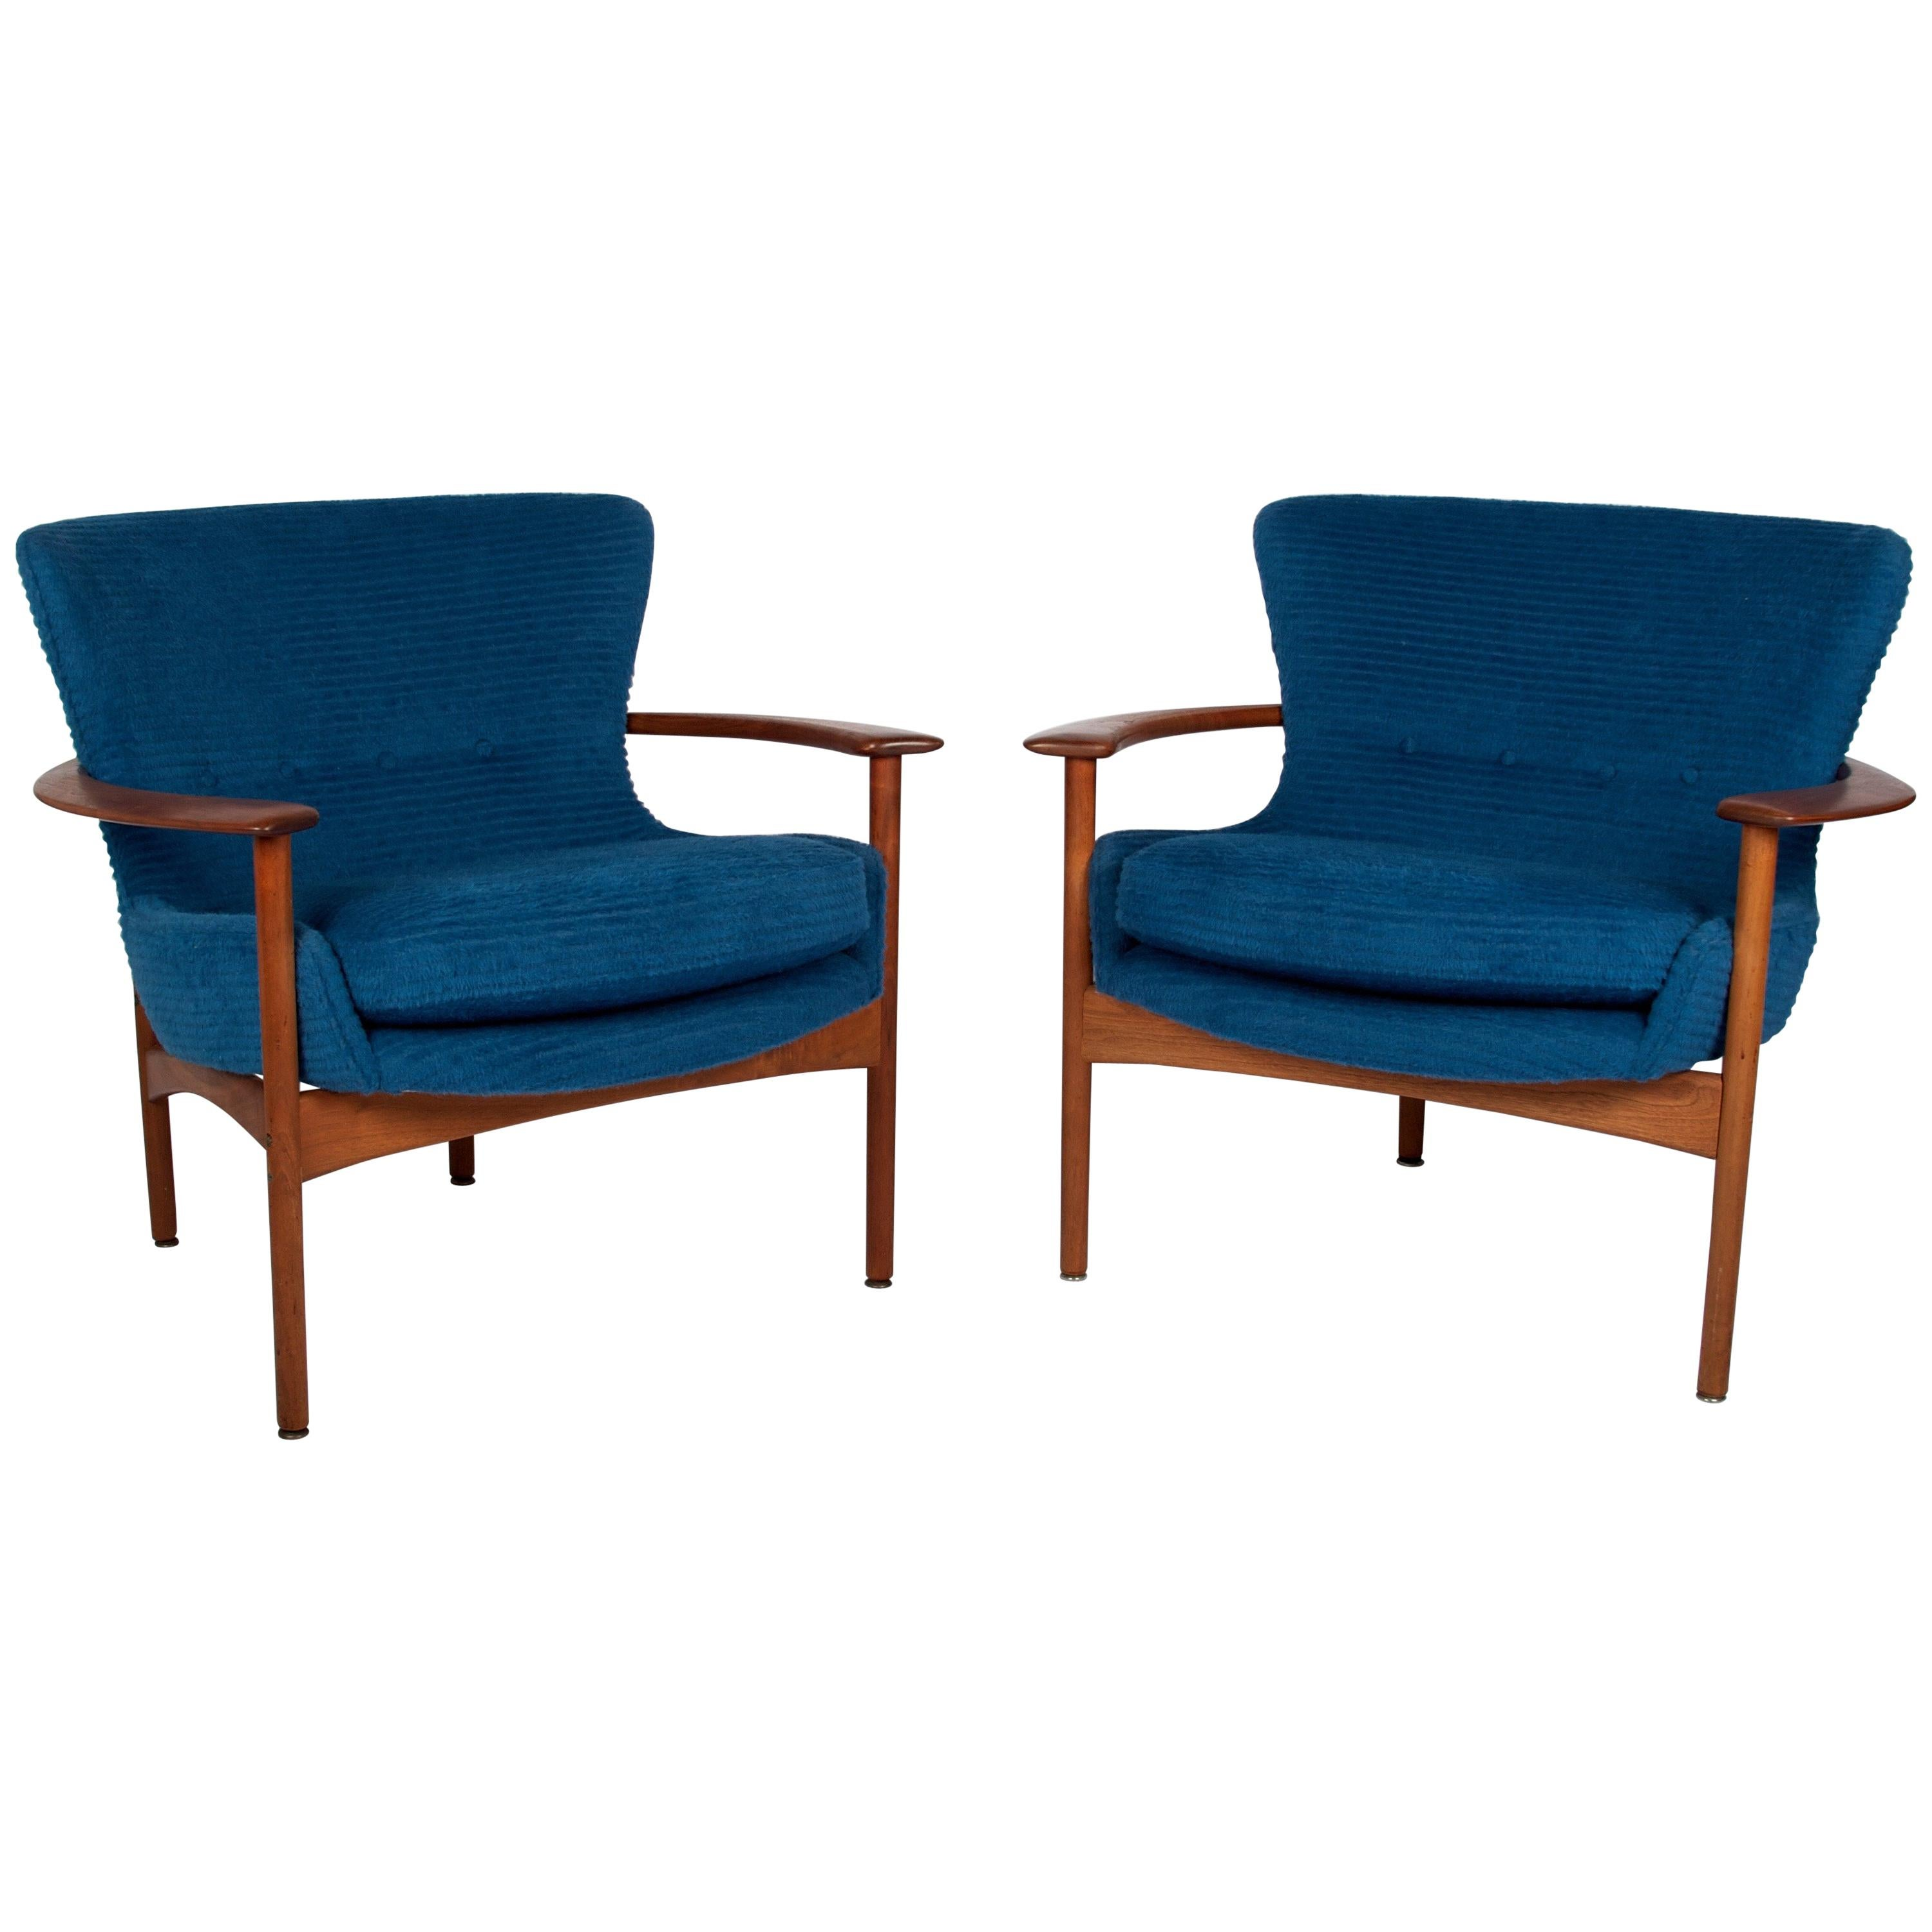 """Ib Kofod-Larsen for Selig Lounge Chairs, a Pair, """"Horseshoe Chair"""" Model 655-15"""